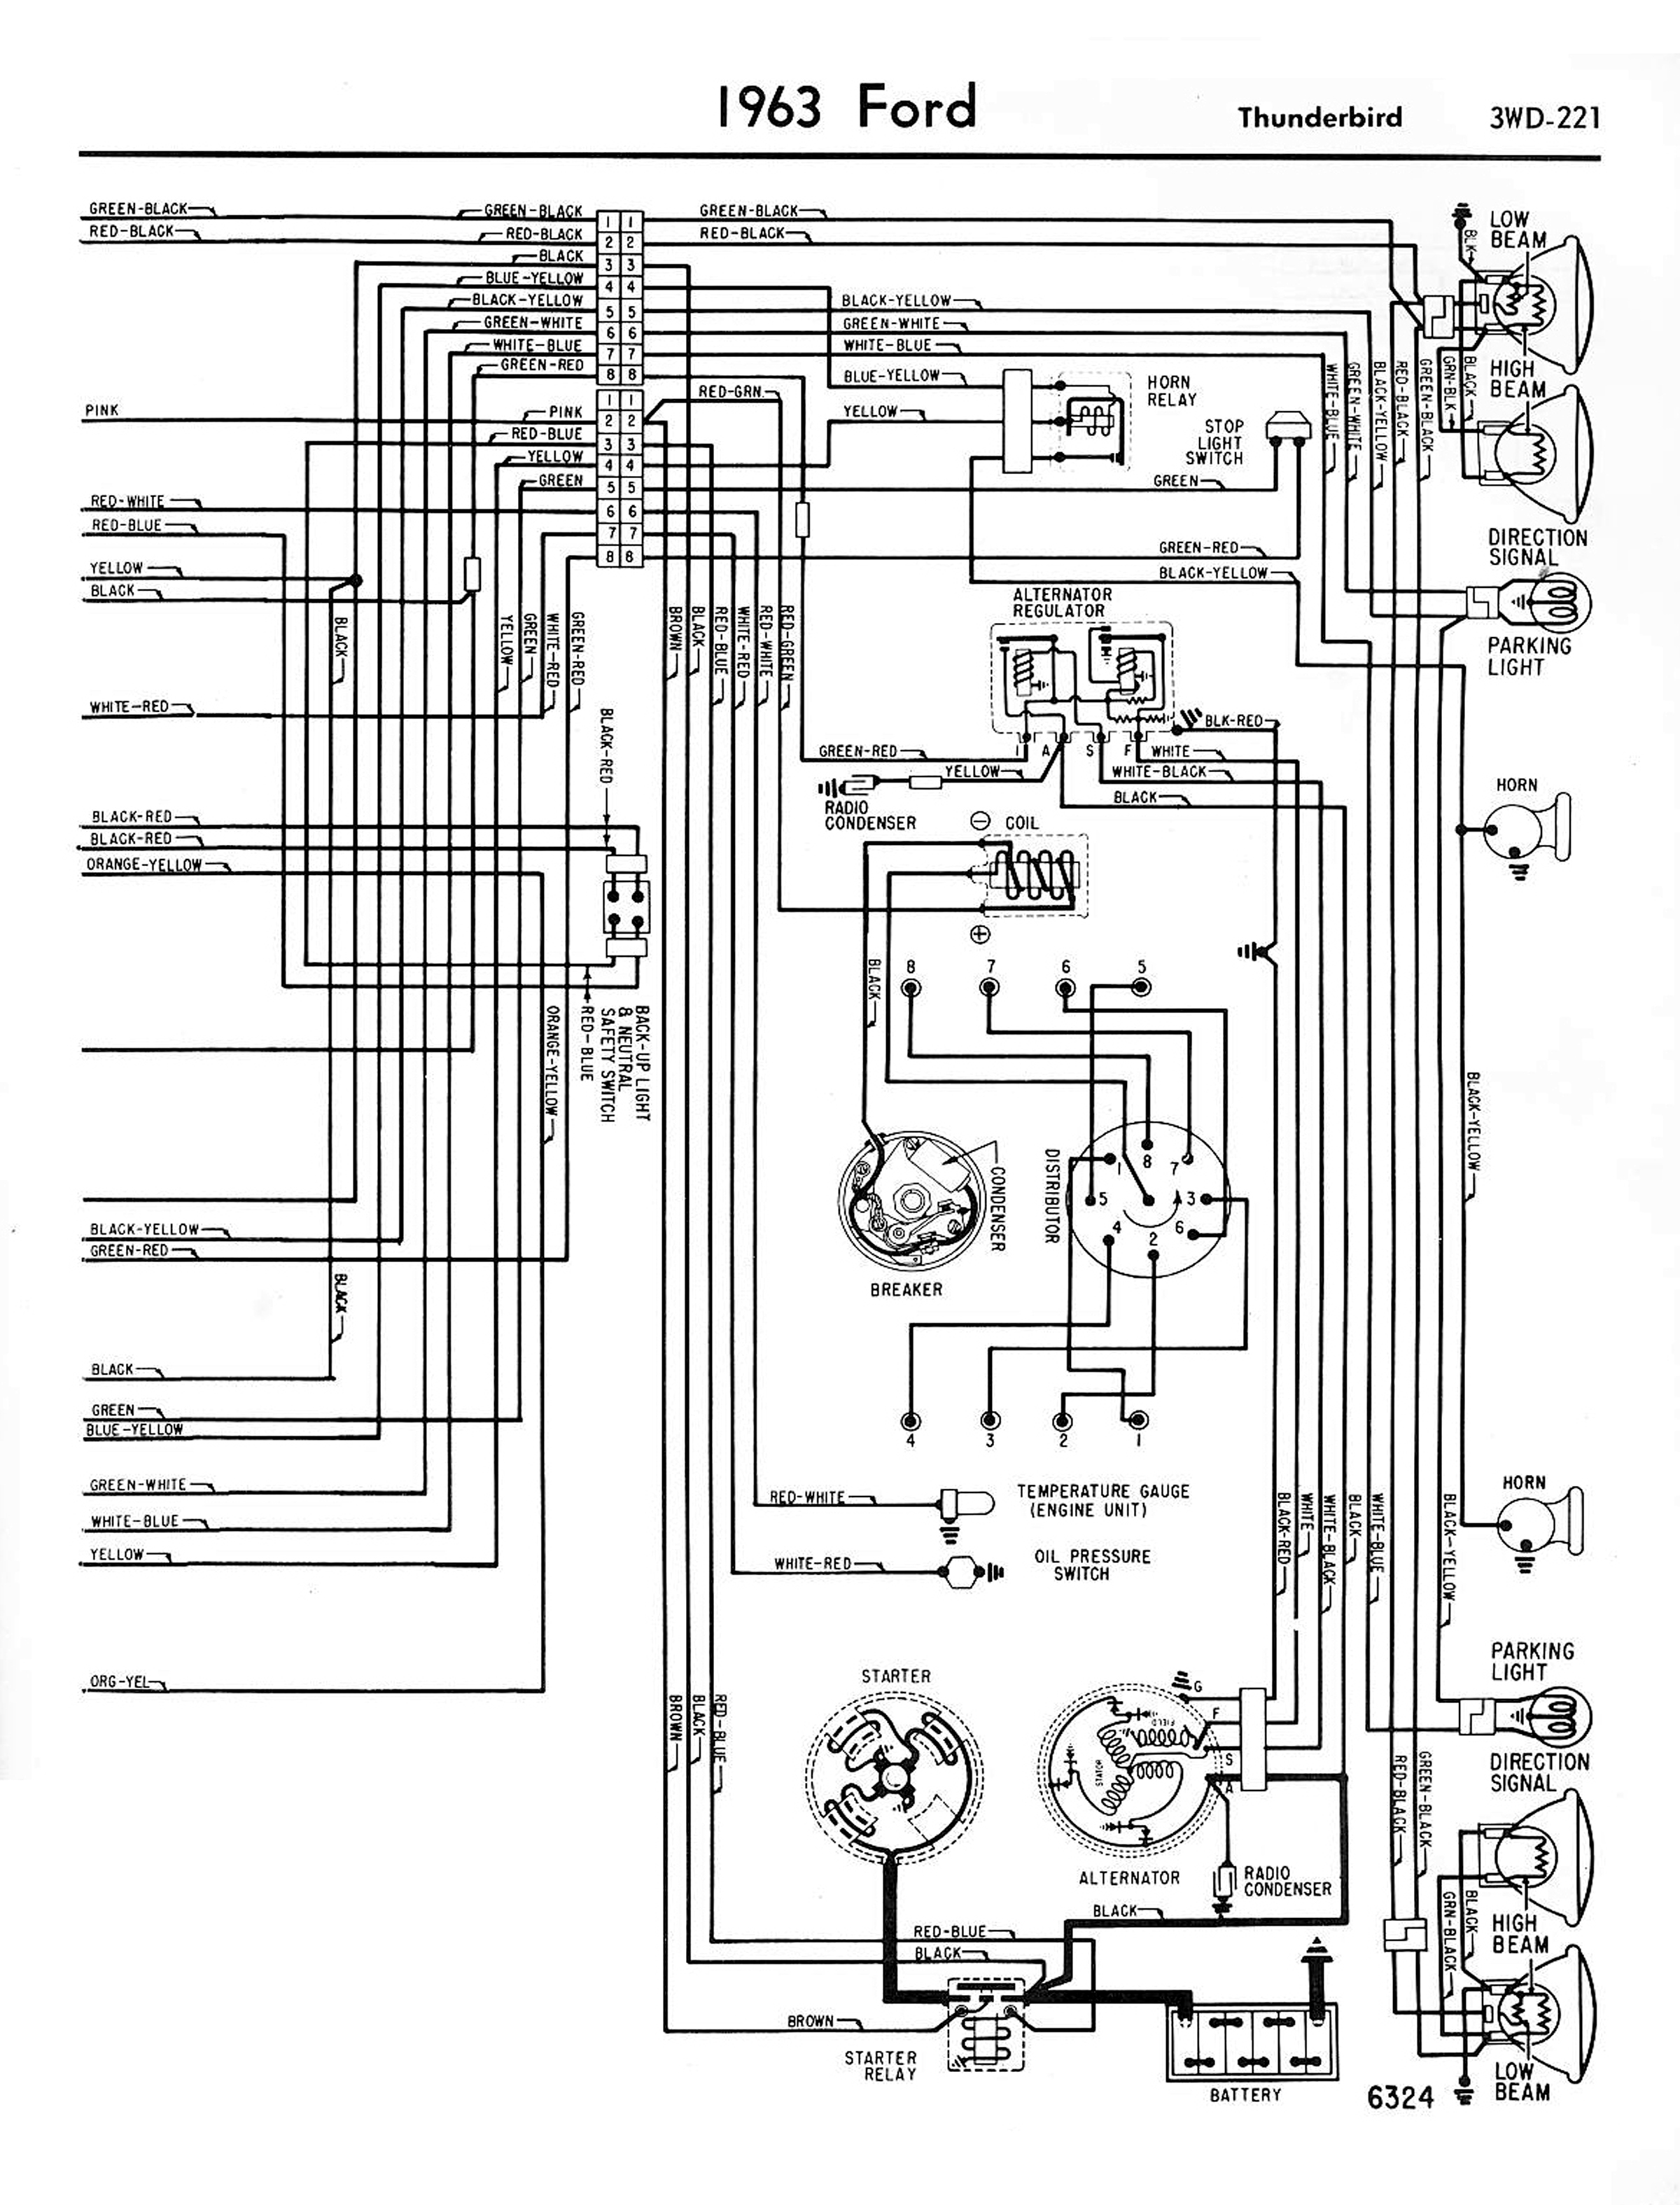 Chevy Impala Steering Column Diagram